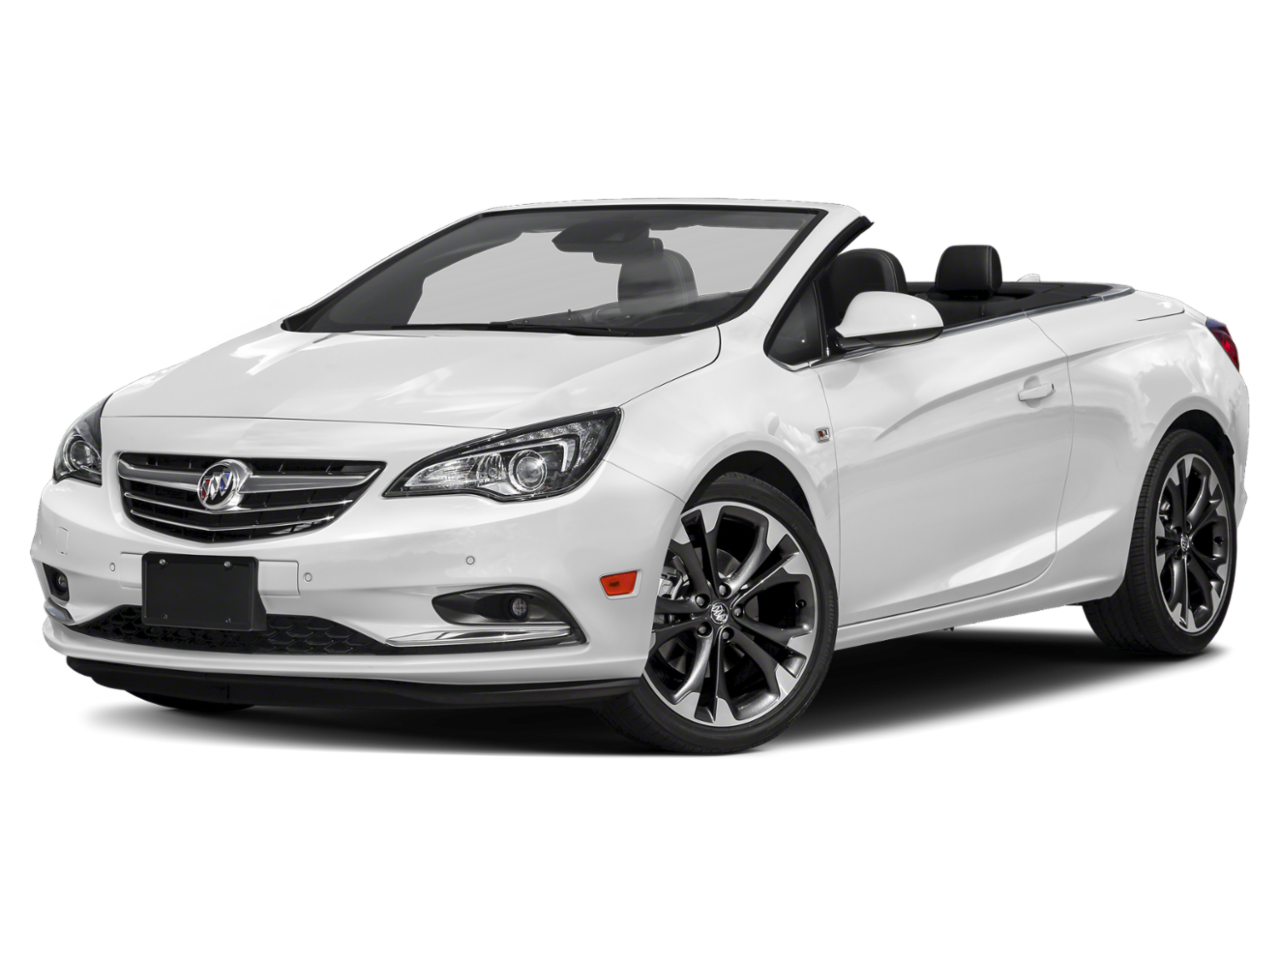 2019 Buick Cascada For Sale In Tacoma At Gilchrist Chevrolet 2021 Buick Cascada Brochure, Colors, Build